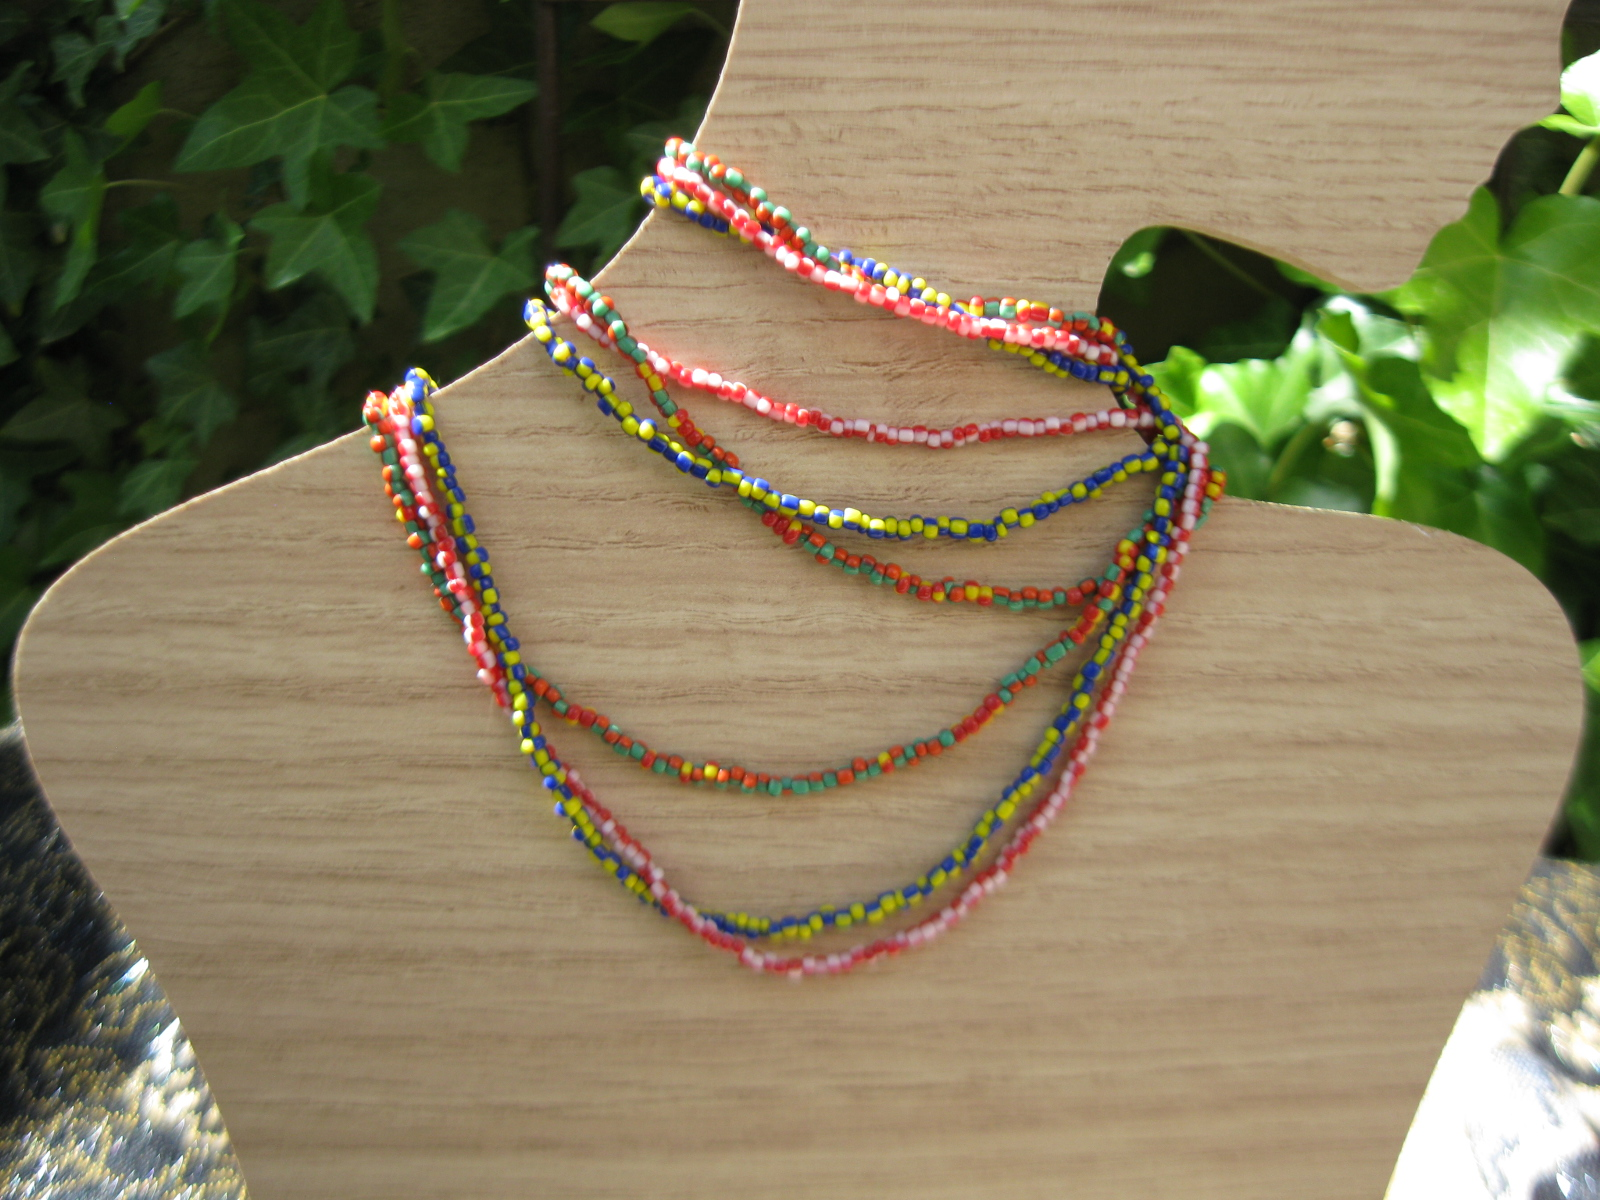 bi-color-necklace-by-ta-meu-bem_16840404087_o.jpg